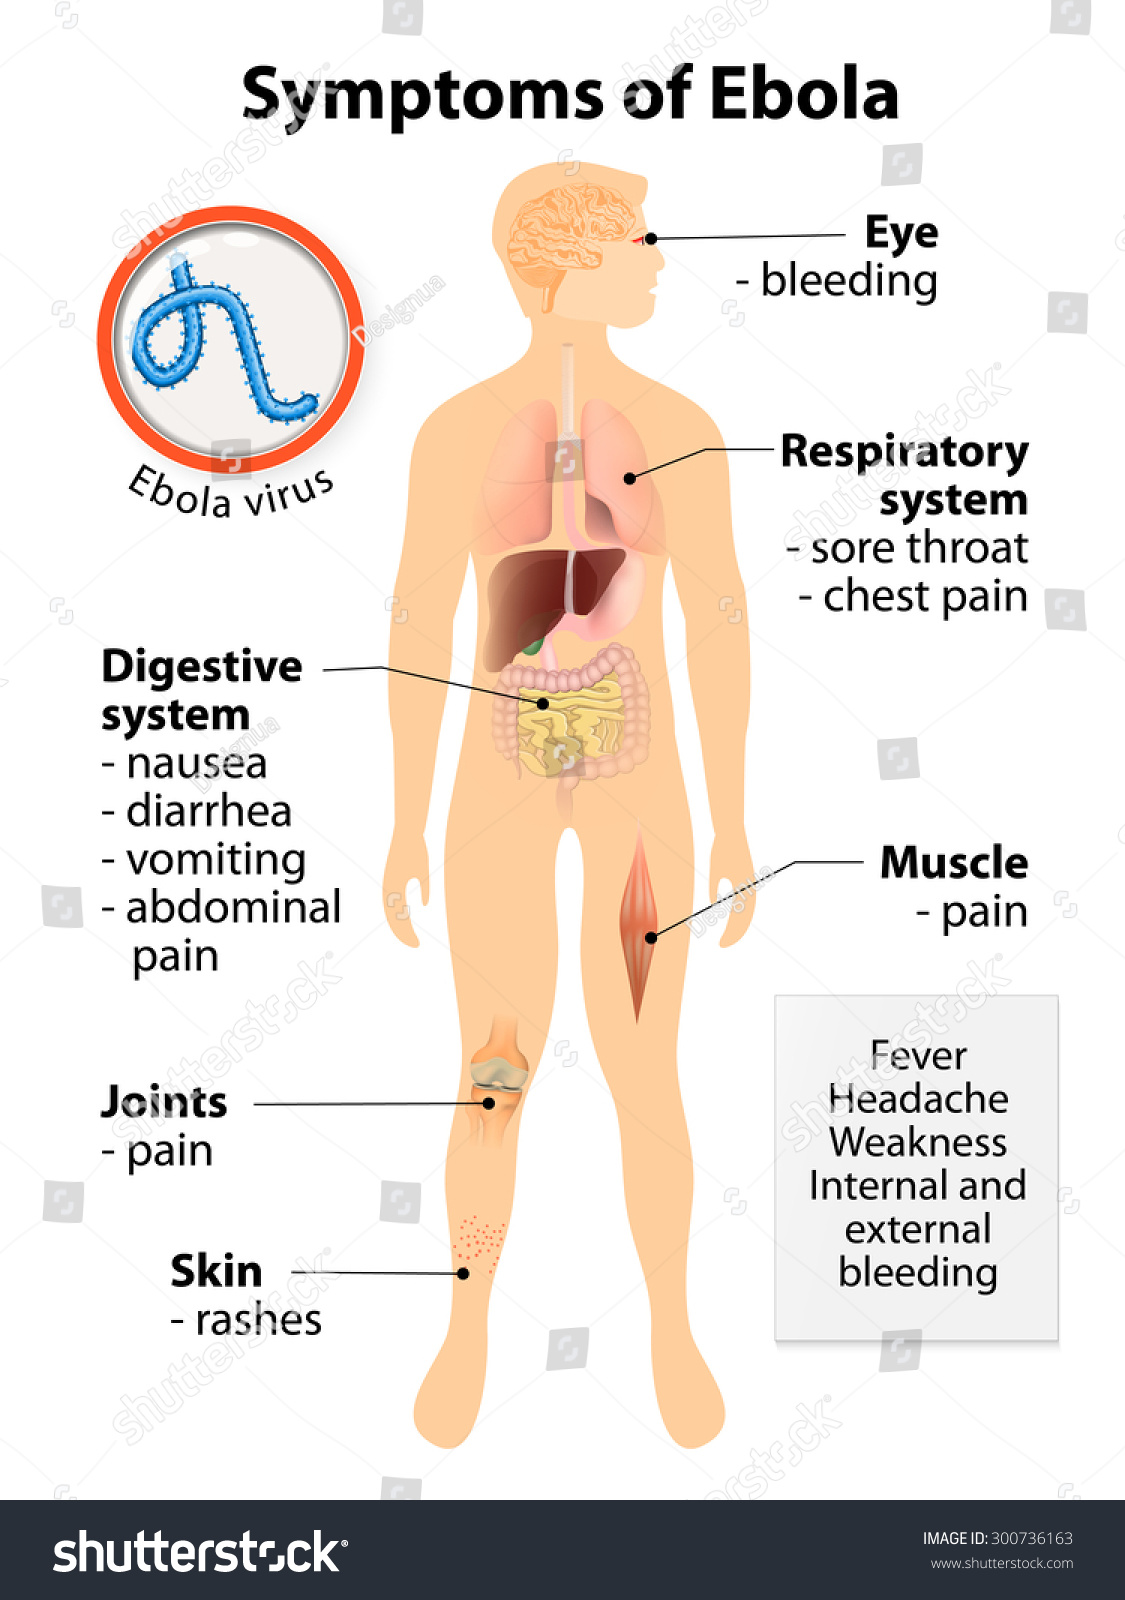 ebola virus disease signs symptoms human stock illustration, Muscles